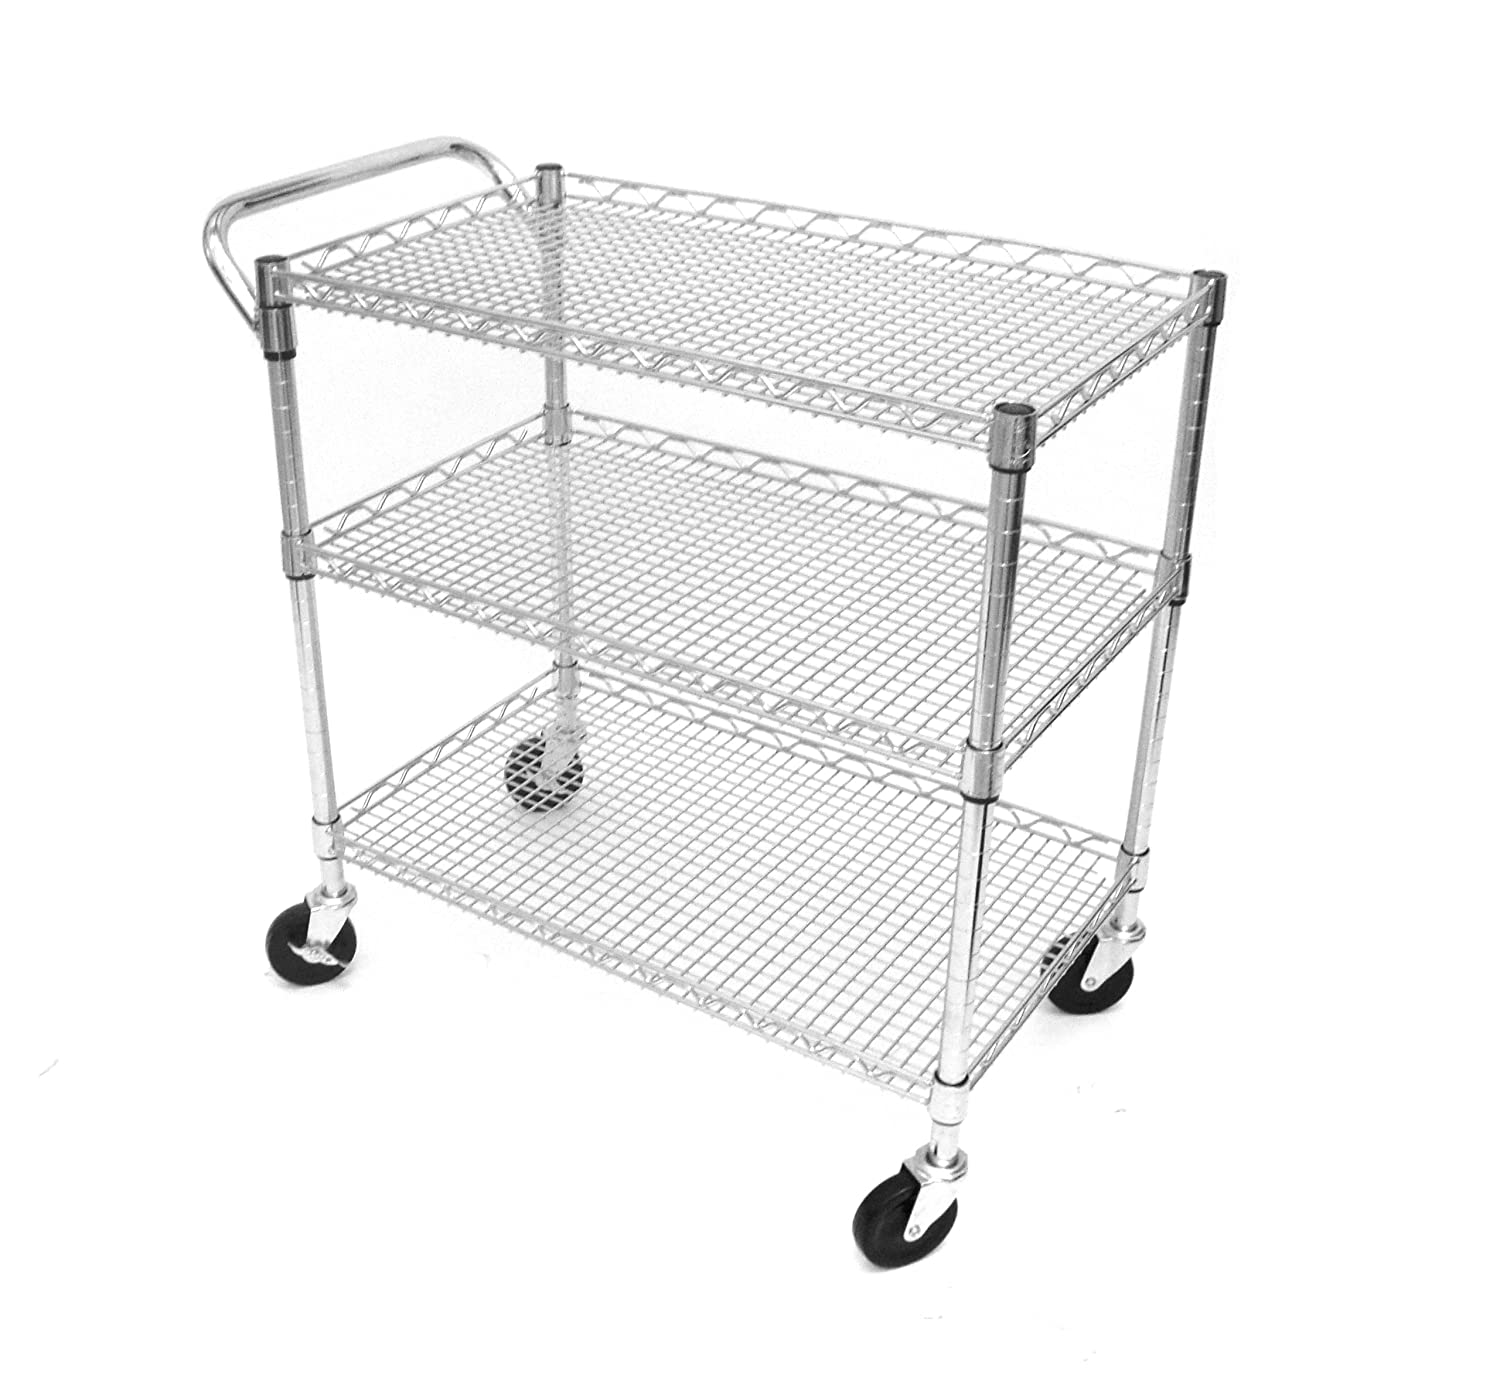 Seville Classics Heavy-Duty All-Purpose Utility Cart, 18 by 34 by 33-1/2-Inch: